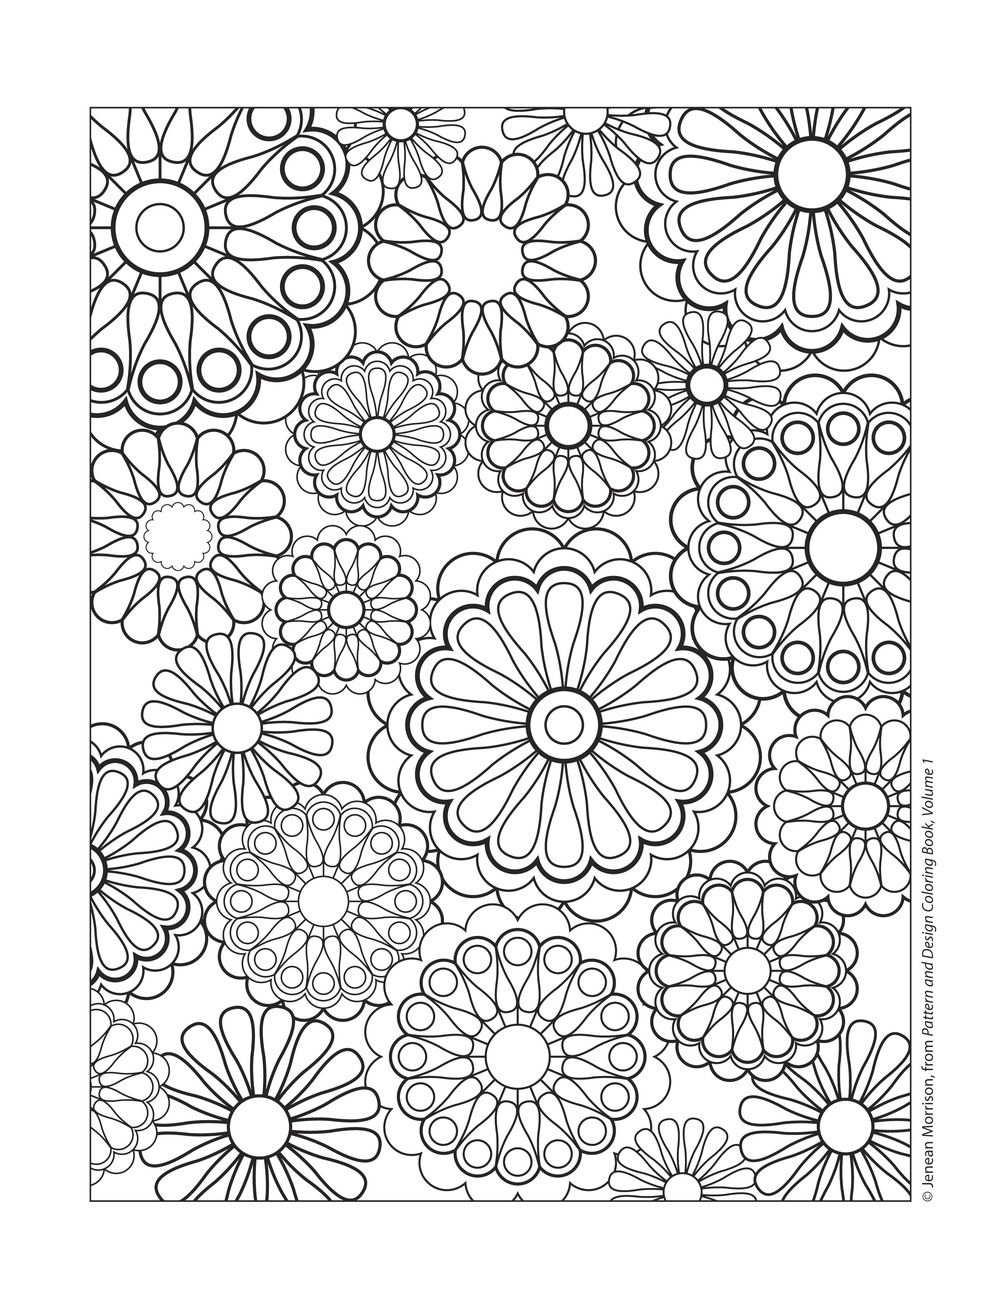 mindful coloring pages Collection-adult coloring pages Google Search 16-i